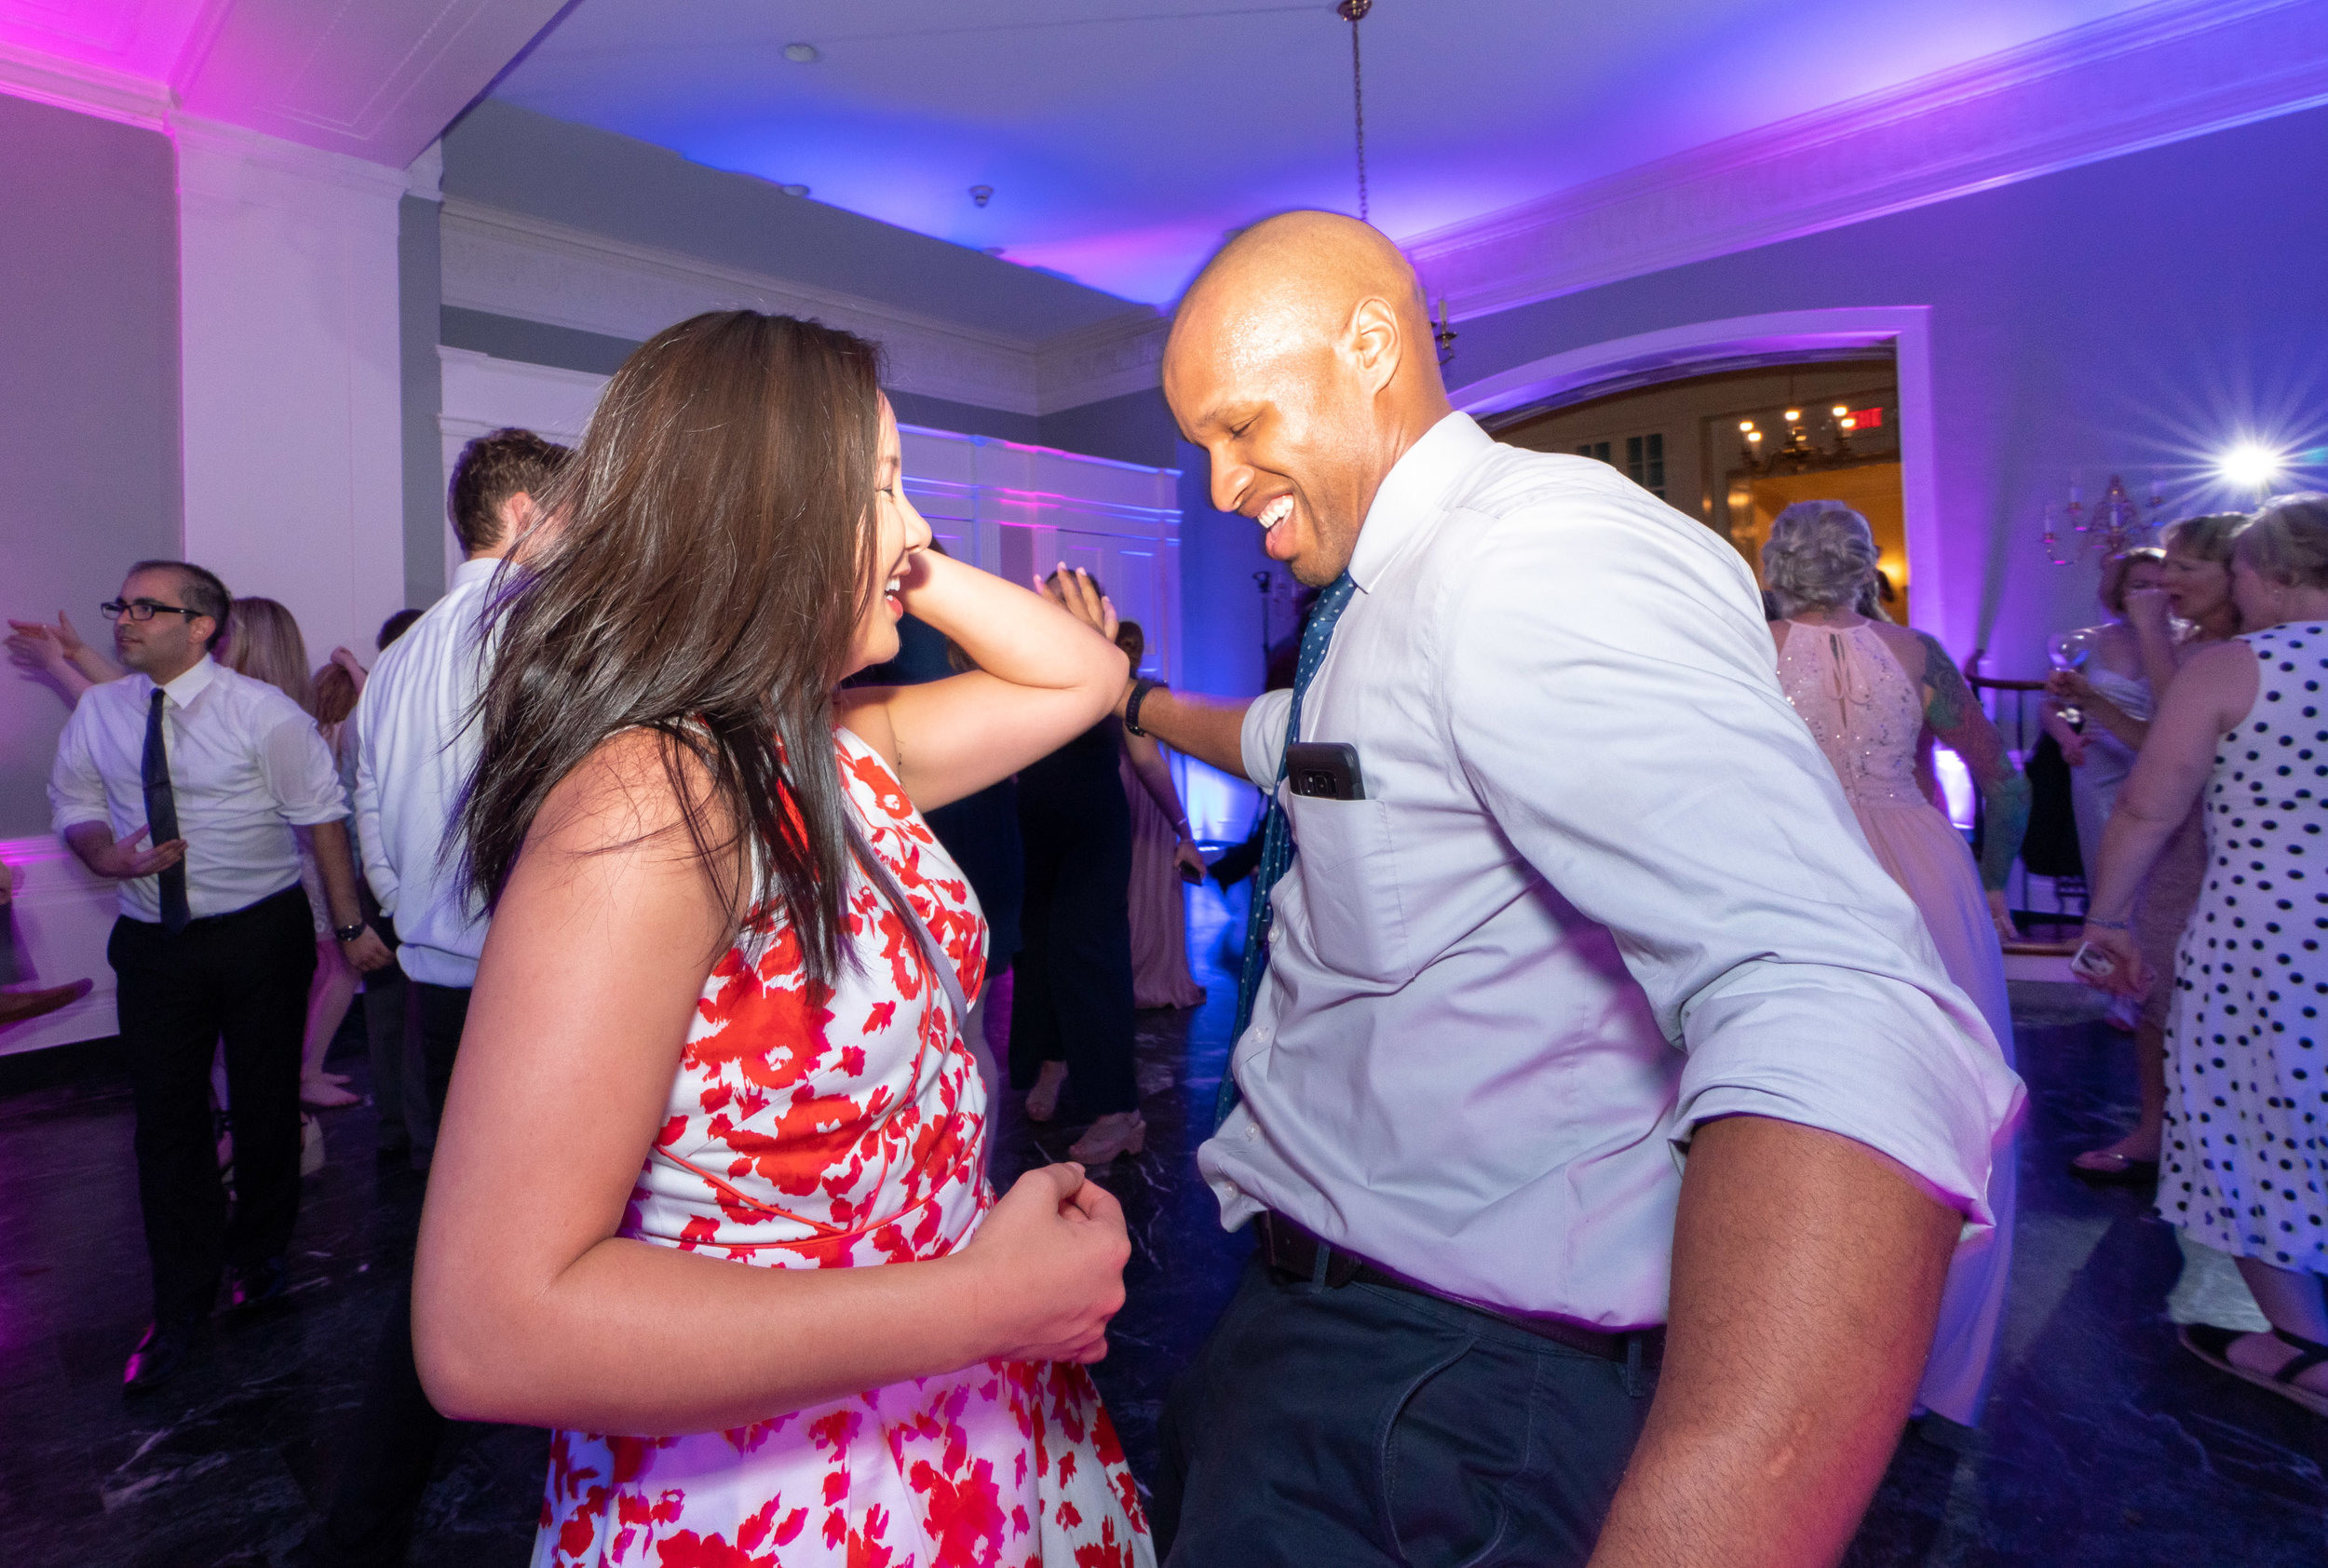 Fun wedding photography in washington dc captures guests dancing